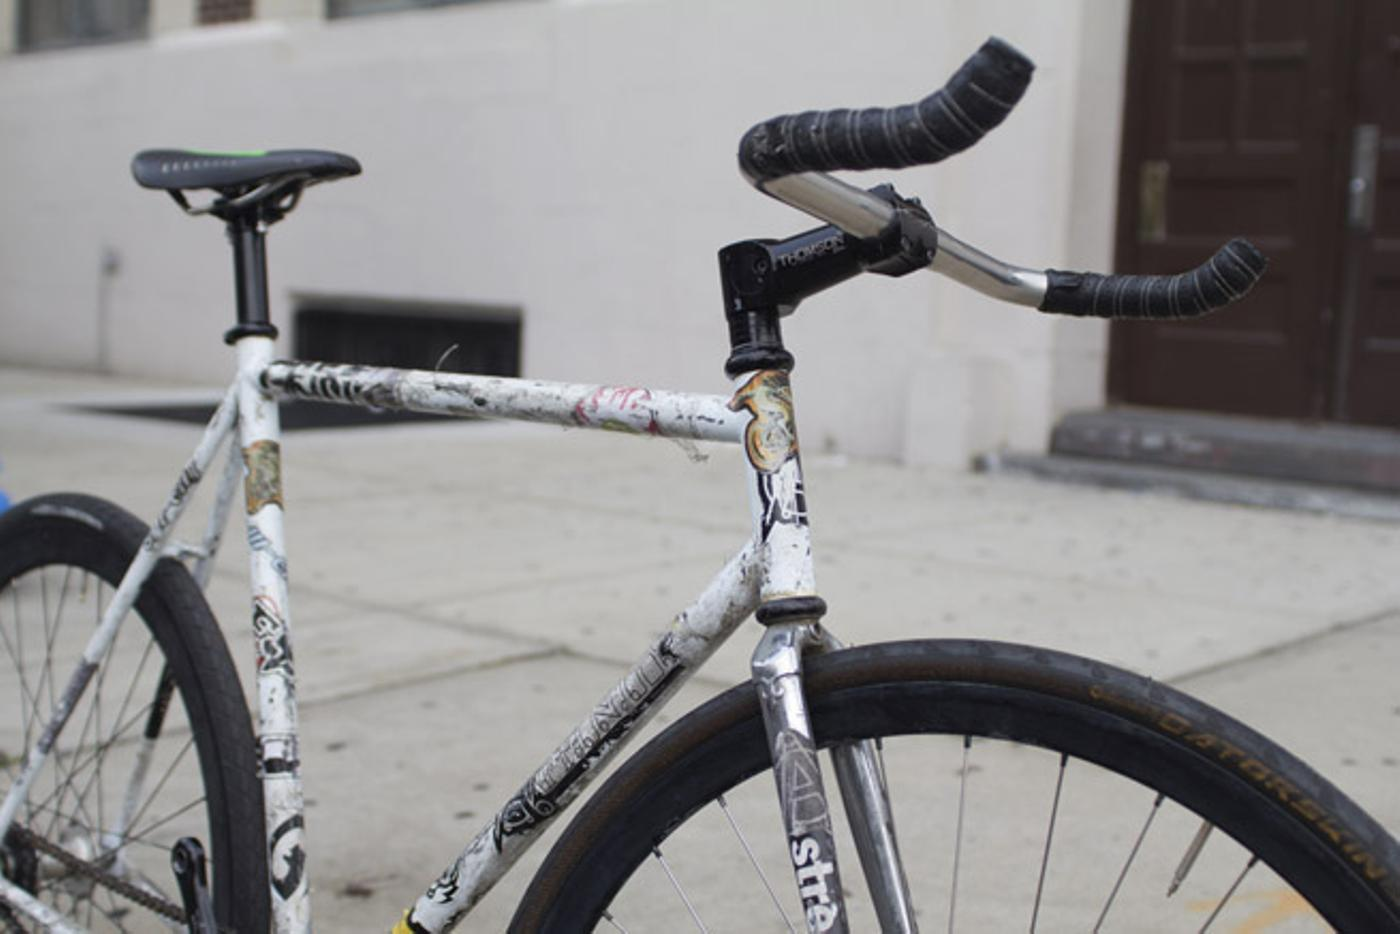 Affinity Premium Rush Bikes The Radavist A Group Of Individuals Who Share A Love Of Cycling And The Outdoors